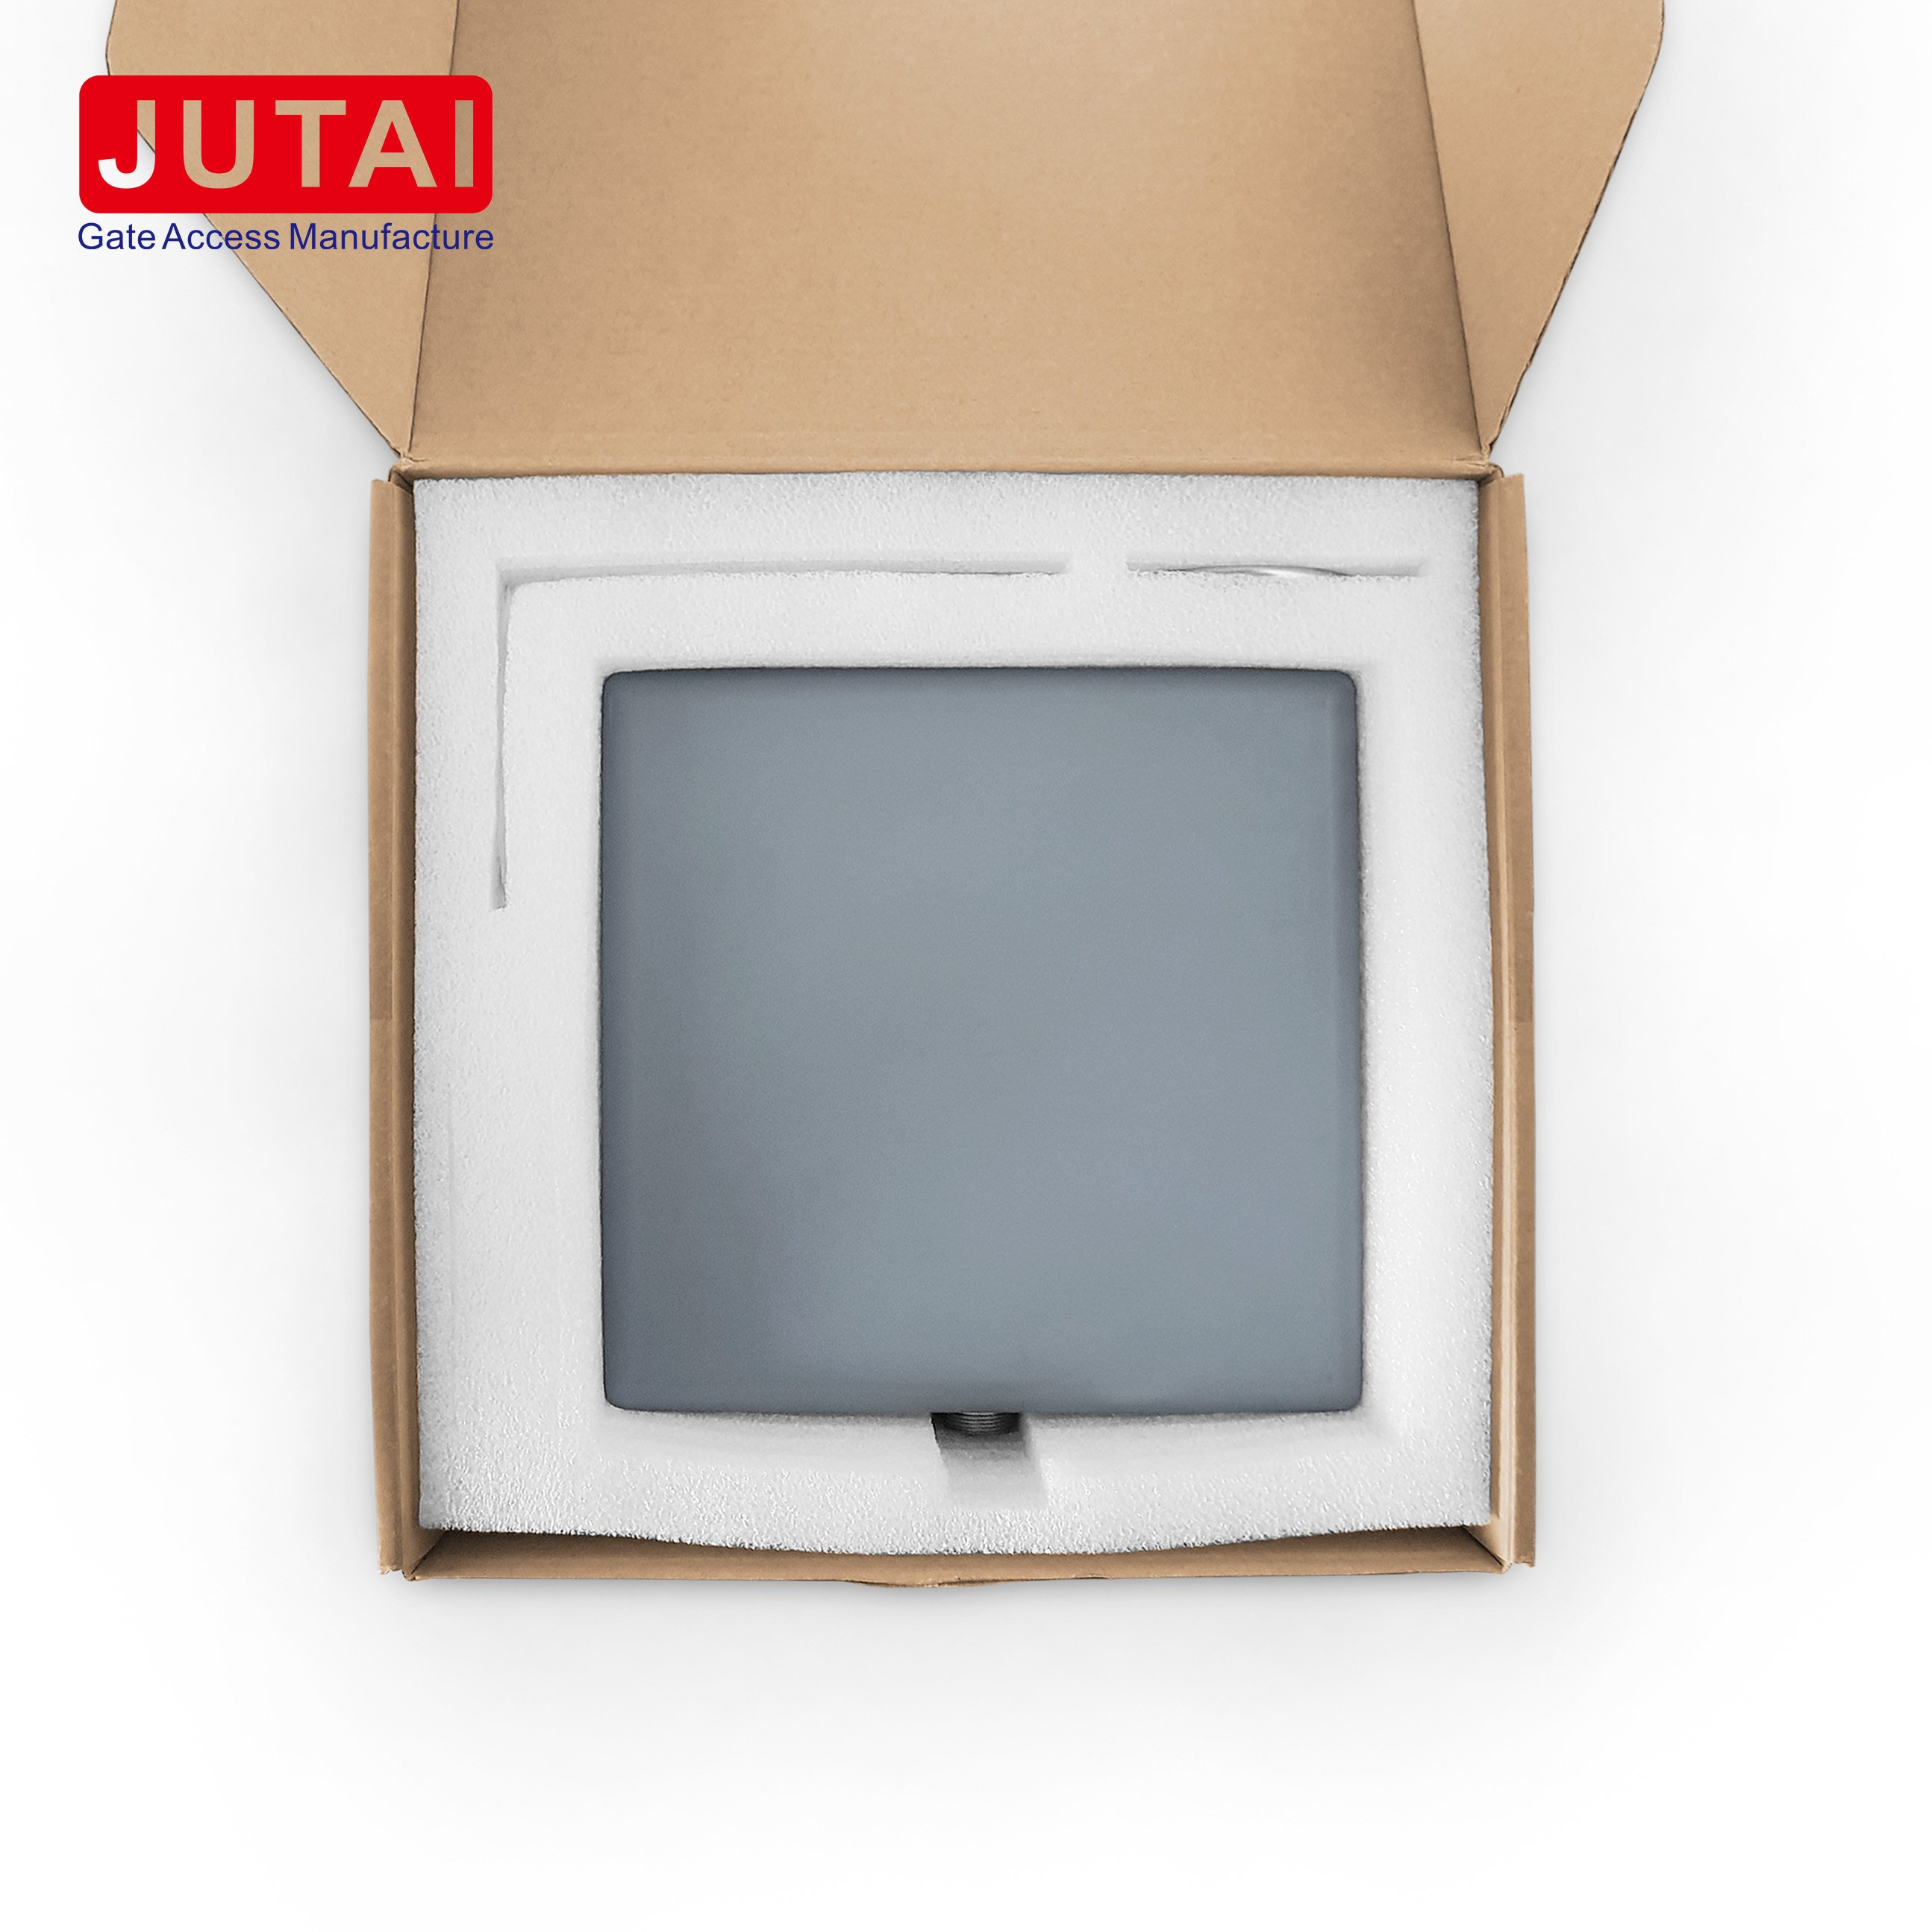 JUTAI 2.45G Long Range Active RFID Reader with CE Approved